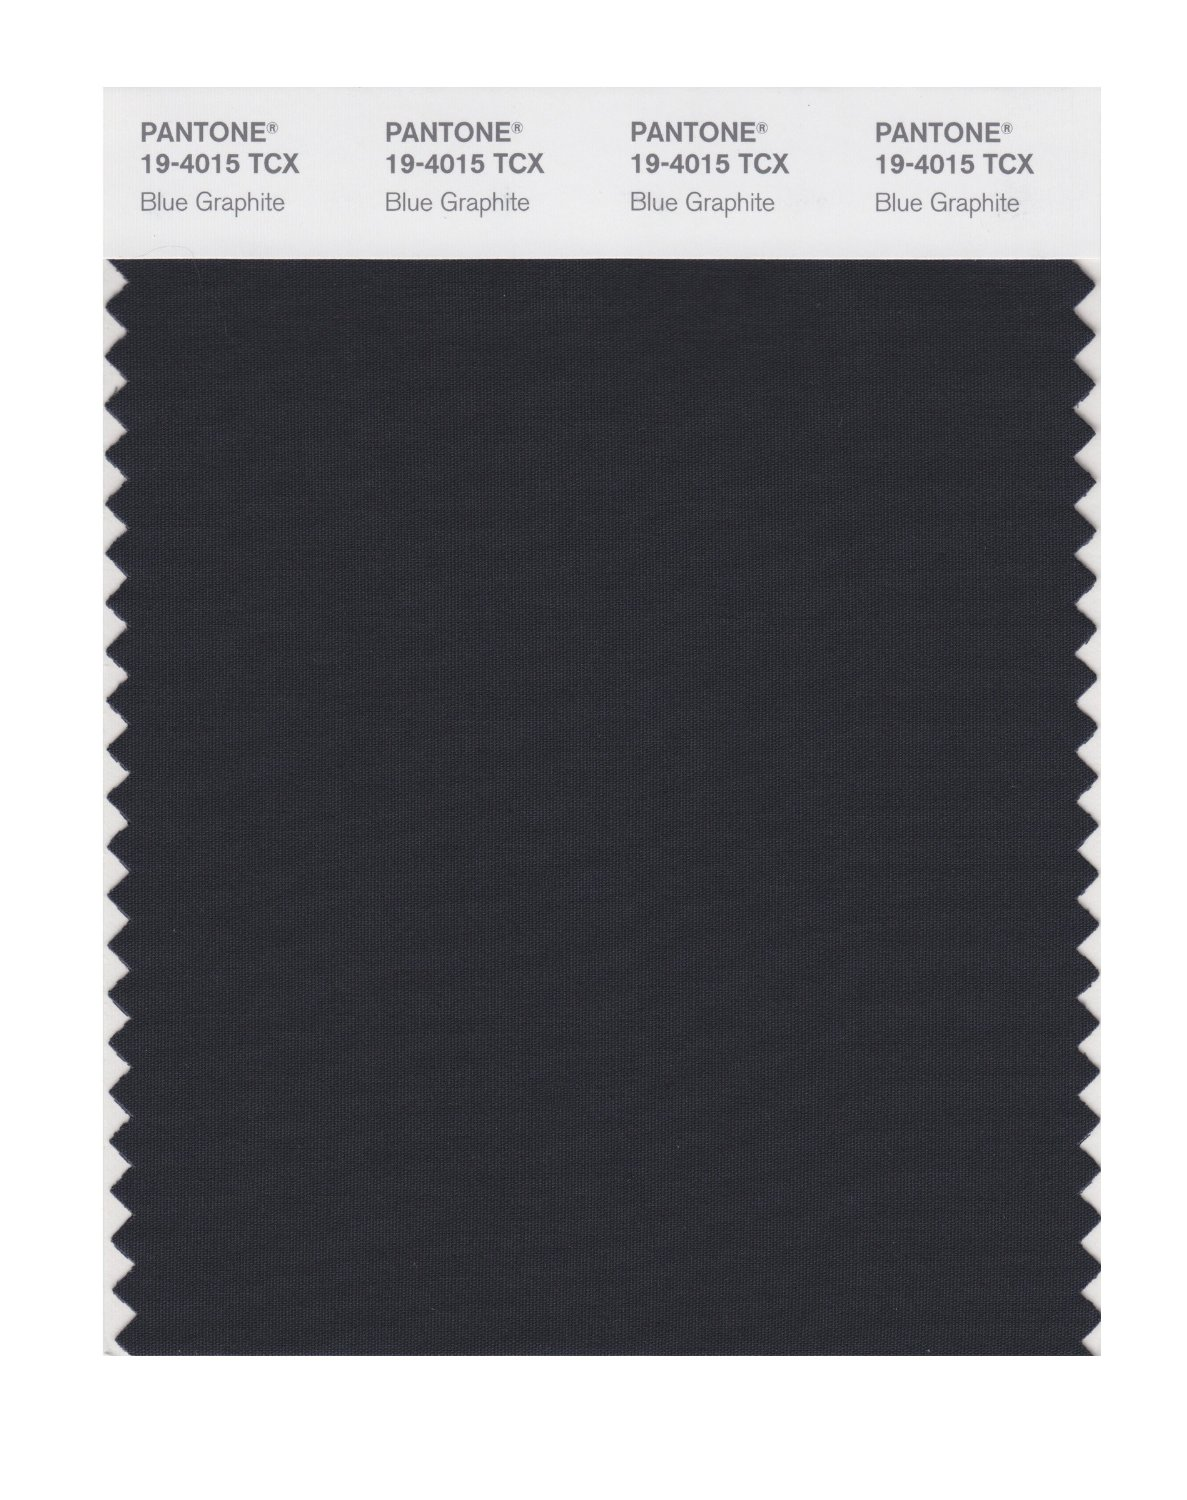 Pantone Smart Swatch 19-4015 Blue Graphite